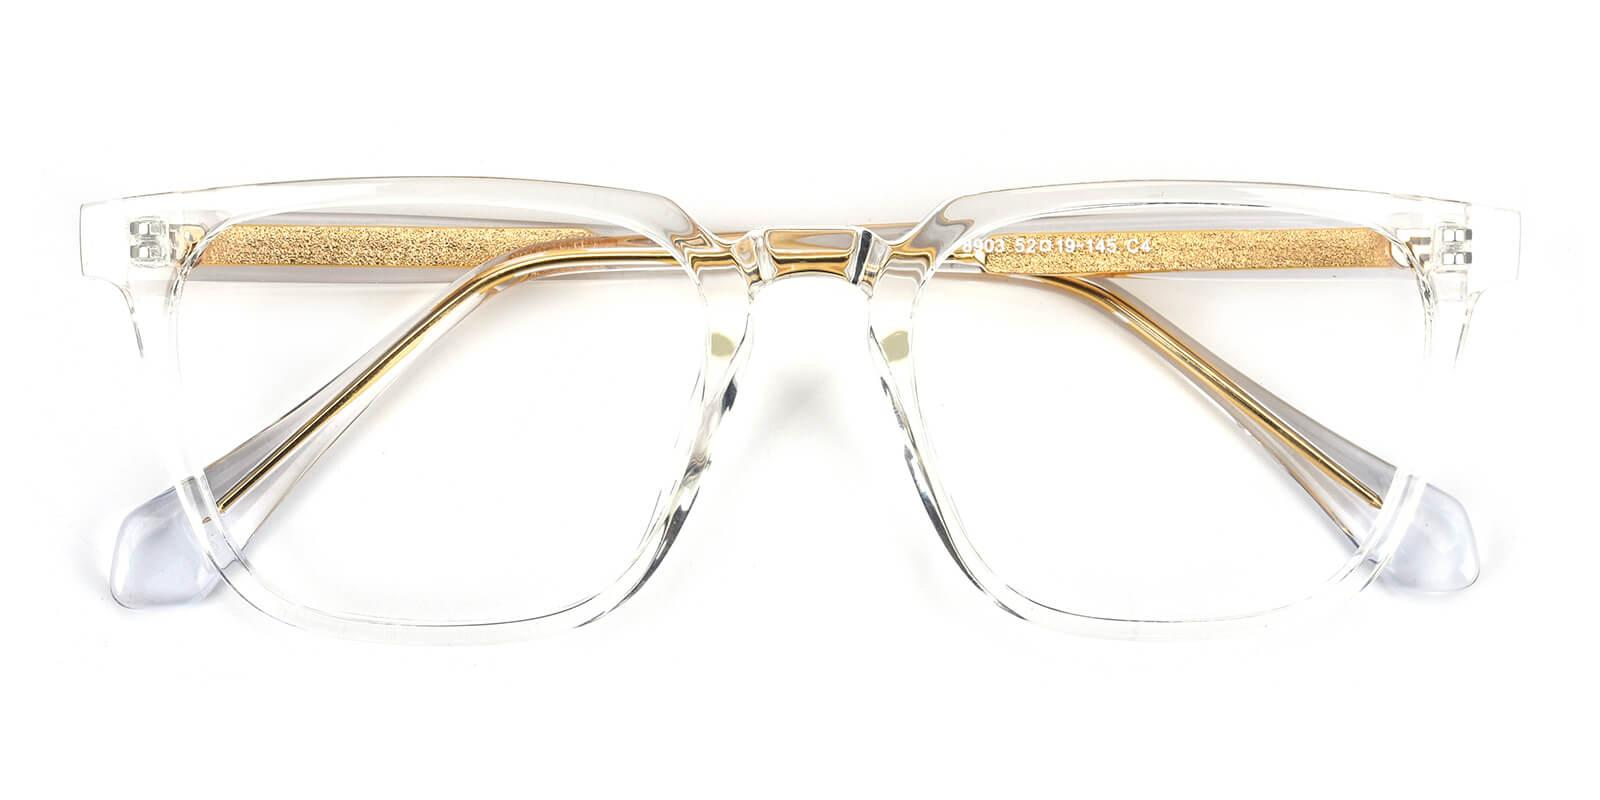 Gekay-Translucent-Square-Acetate-Eyeglasses-detail